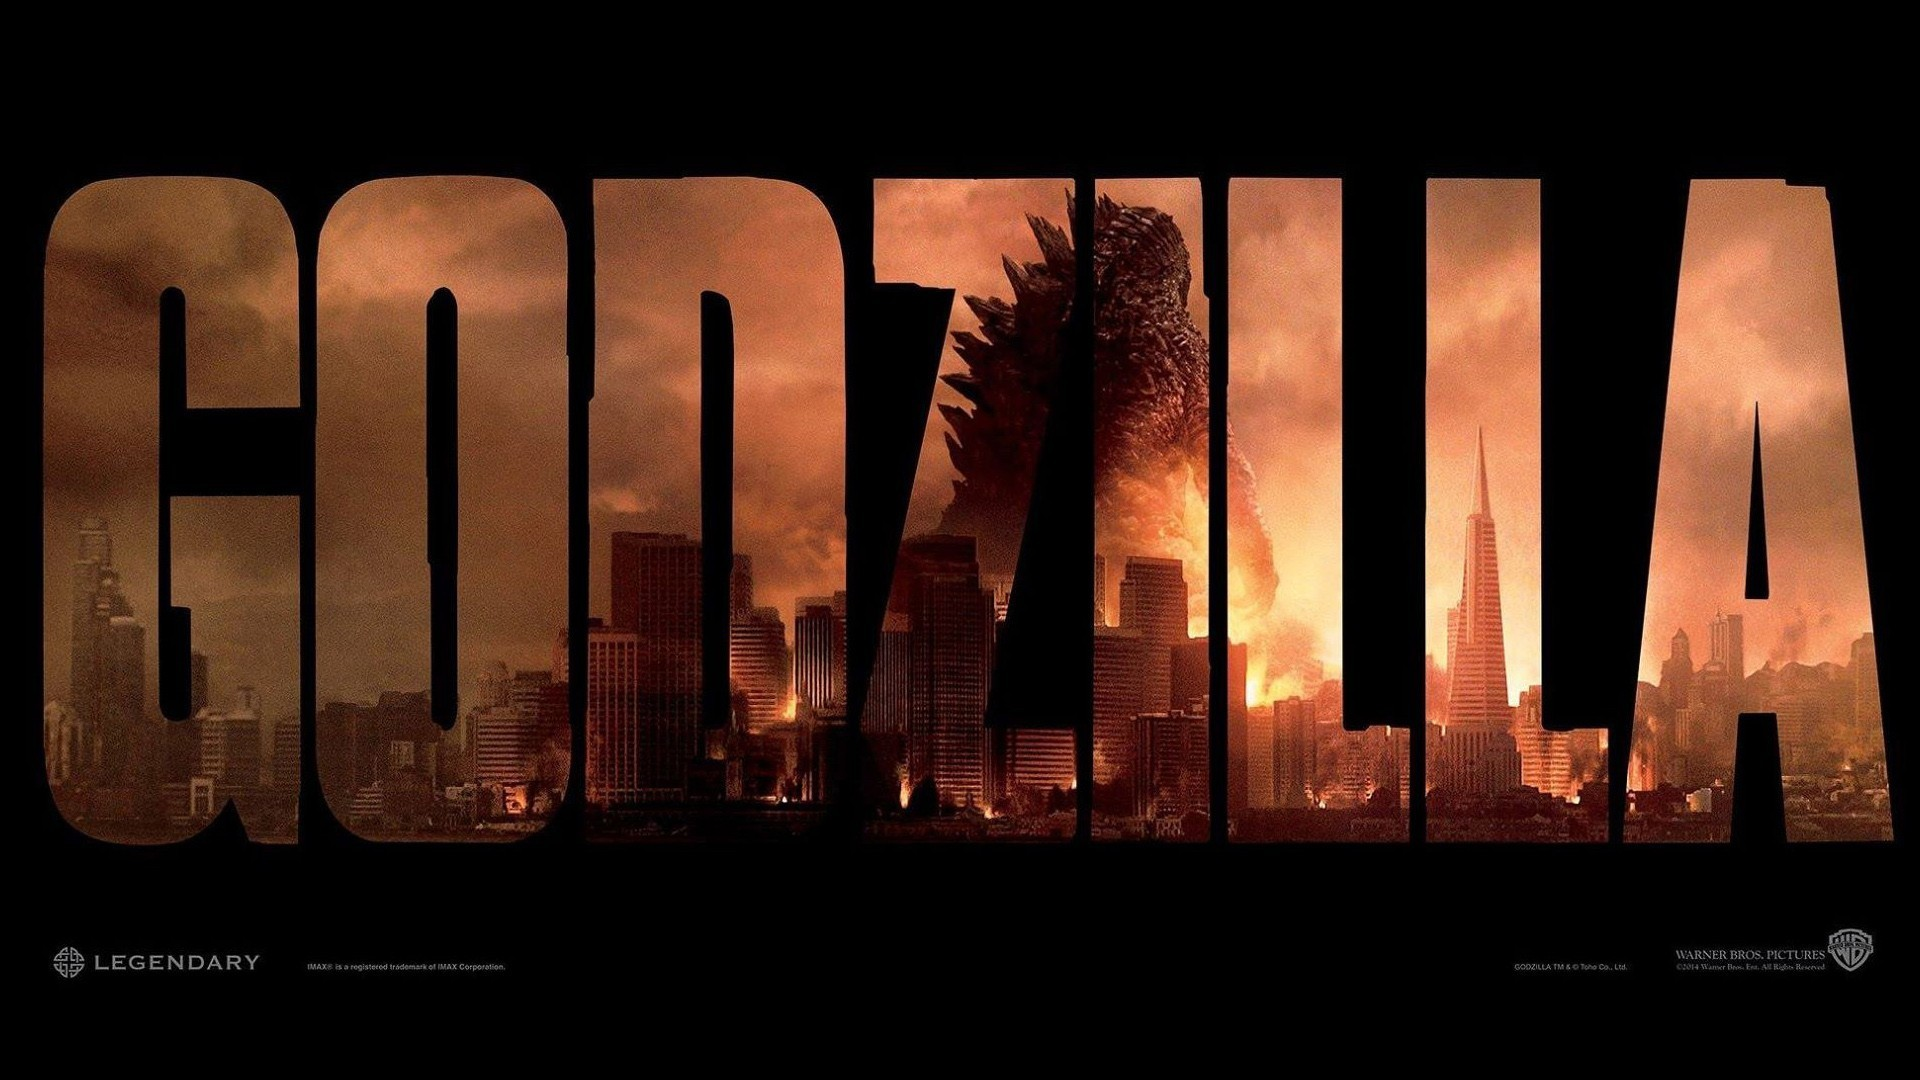 1920x1080 ... x 1080 Original. Description: Download Godzilla Movie Movies wallpaper  ...